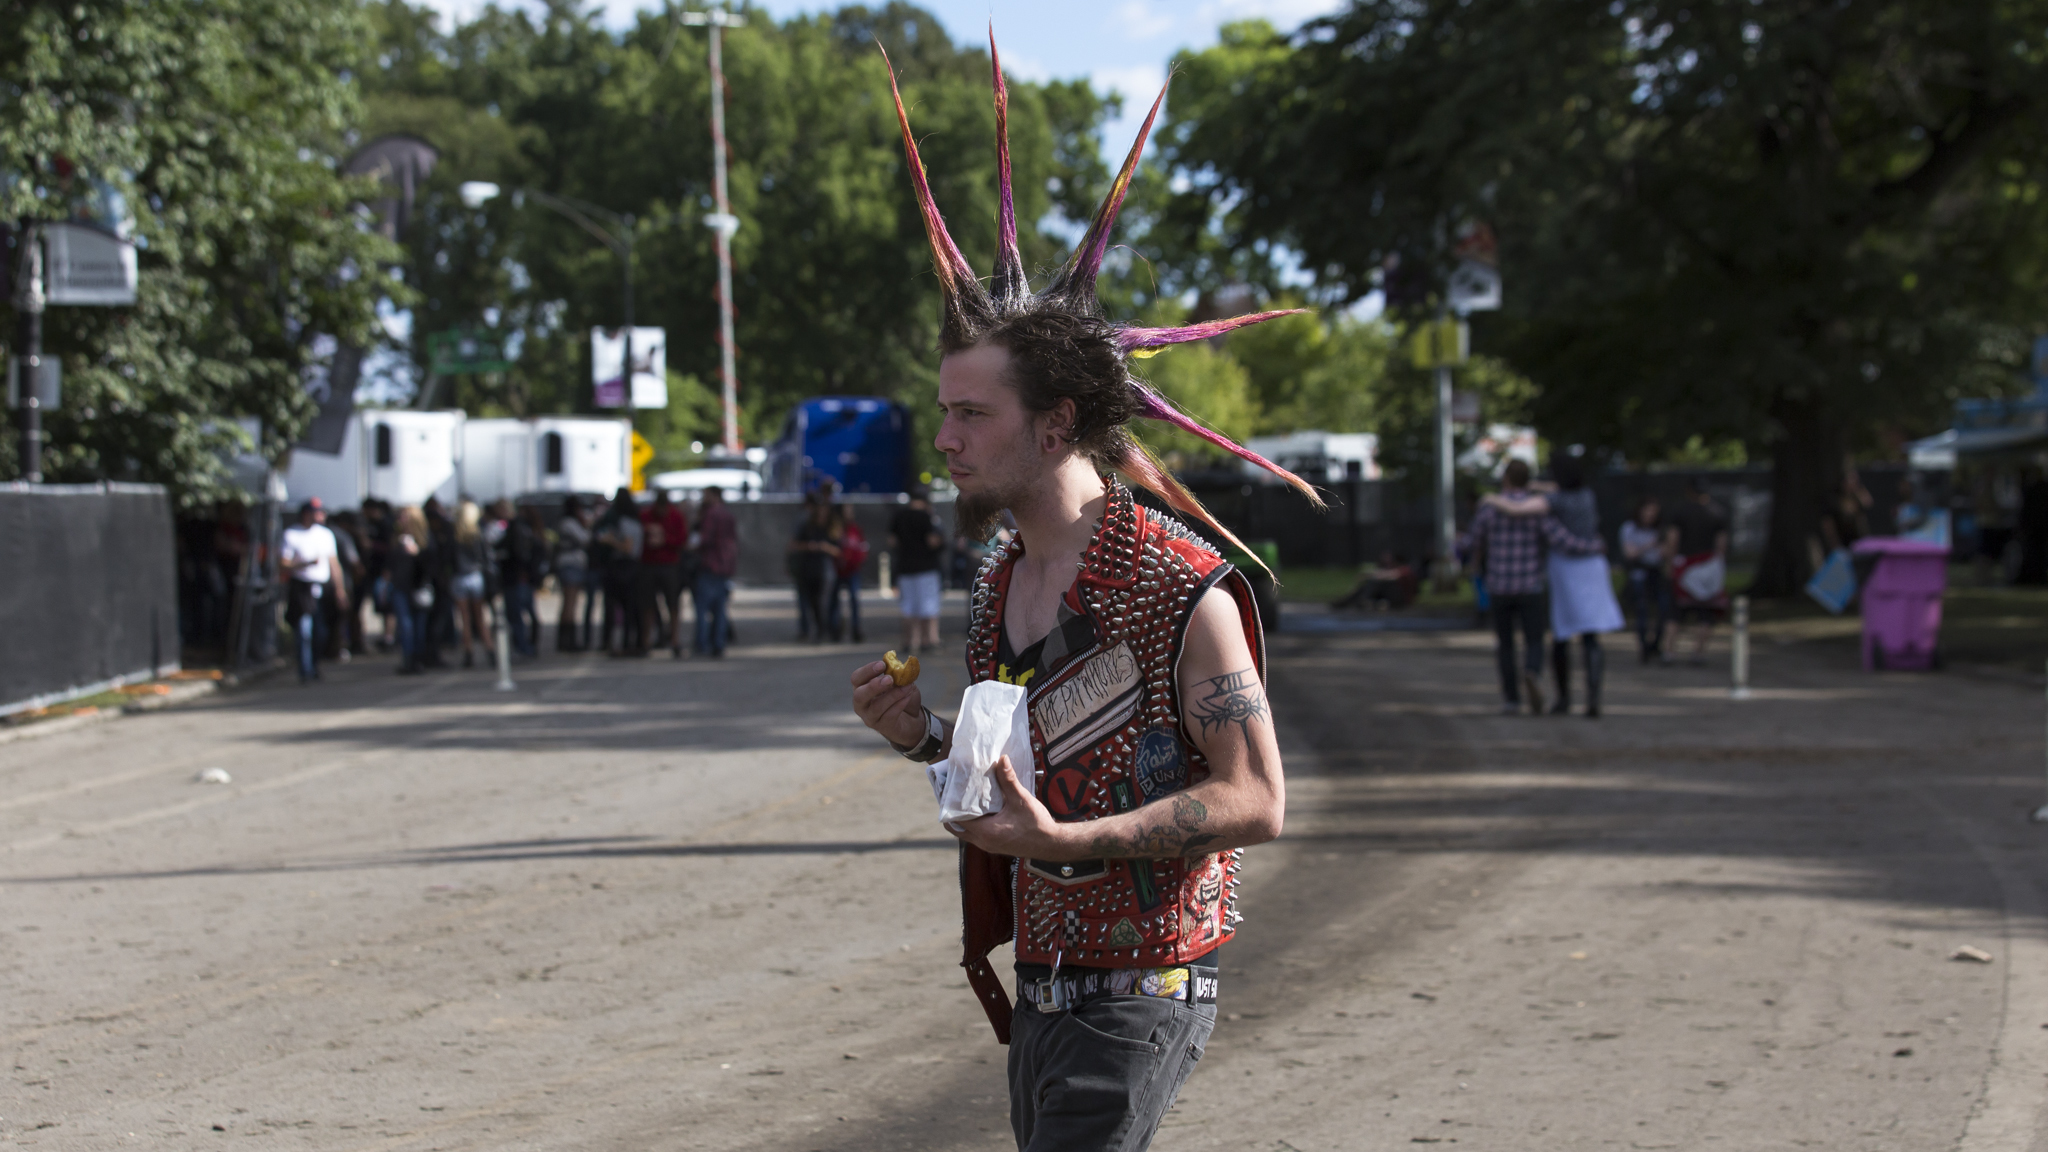 Punks and rockers gathered in Douglas Park for the final day of Riot Fest, September 13, 2015.